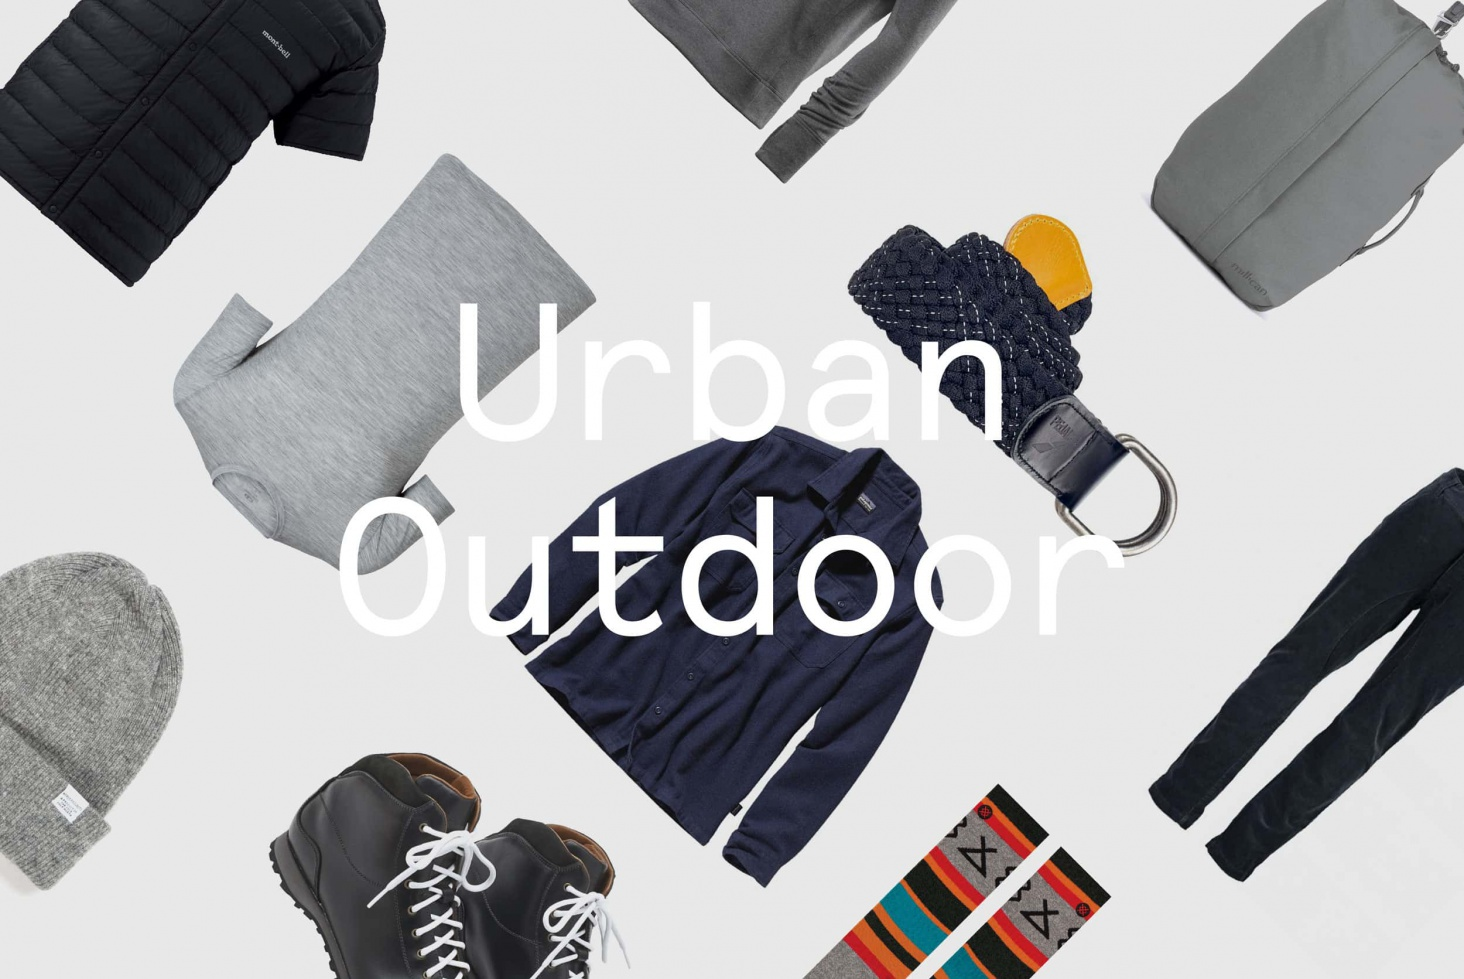 Urban_Outdoor_0a